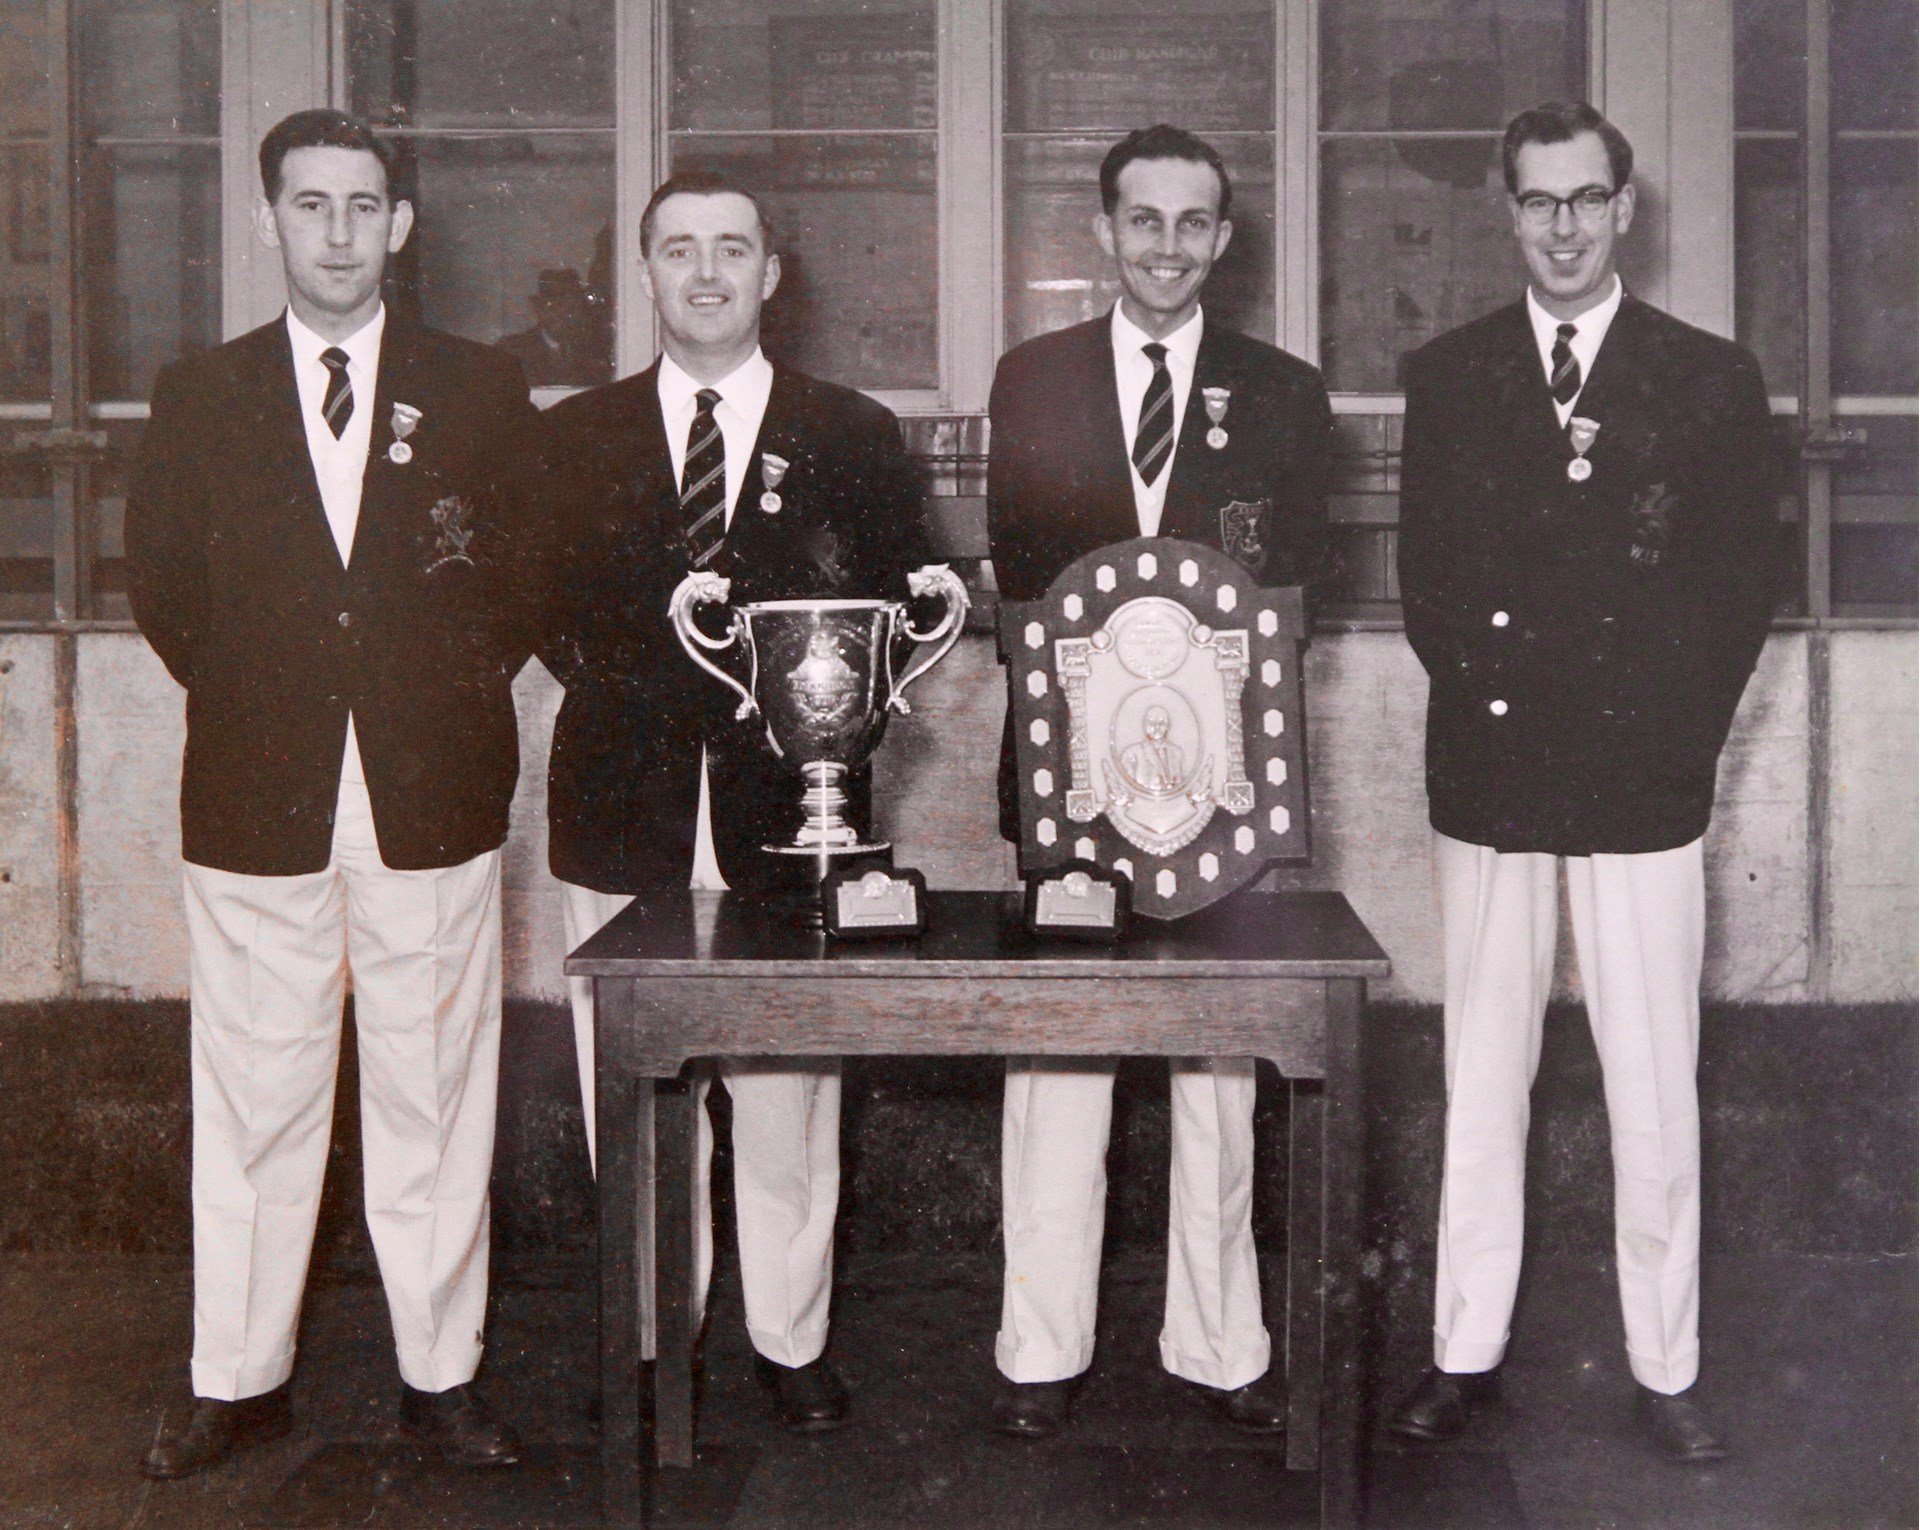 British Isles and Welsh Fours Winners 1963     From left to right: G Humphries, R. Thomas, J.A. Morgan & J.R. Evans